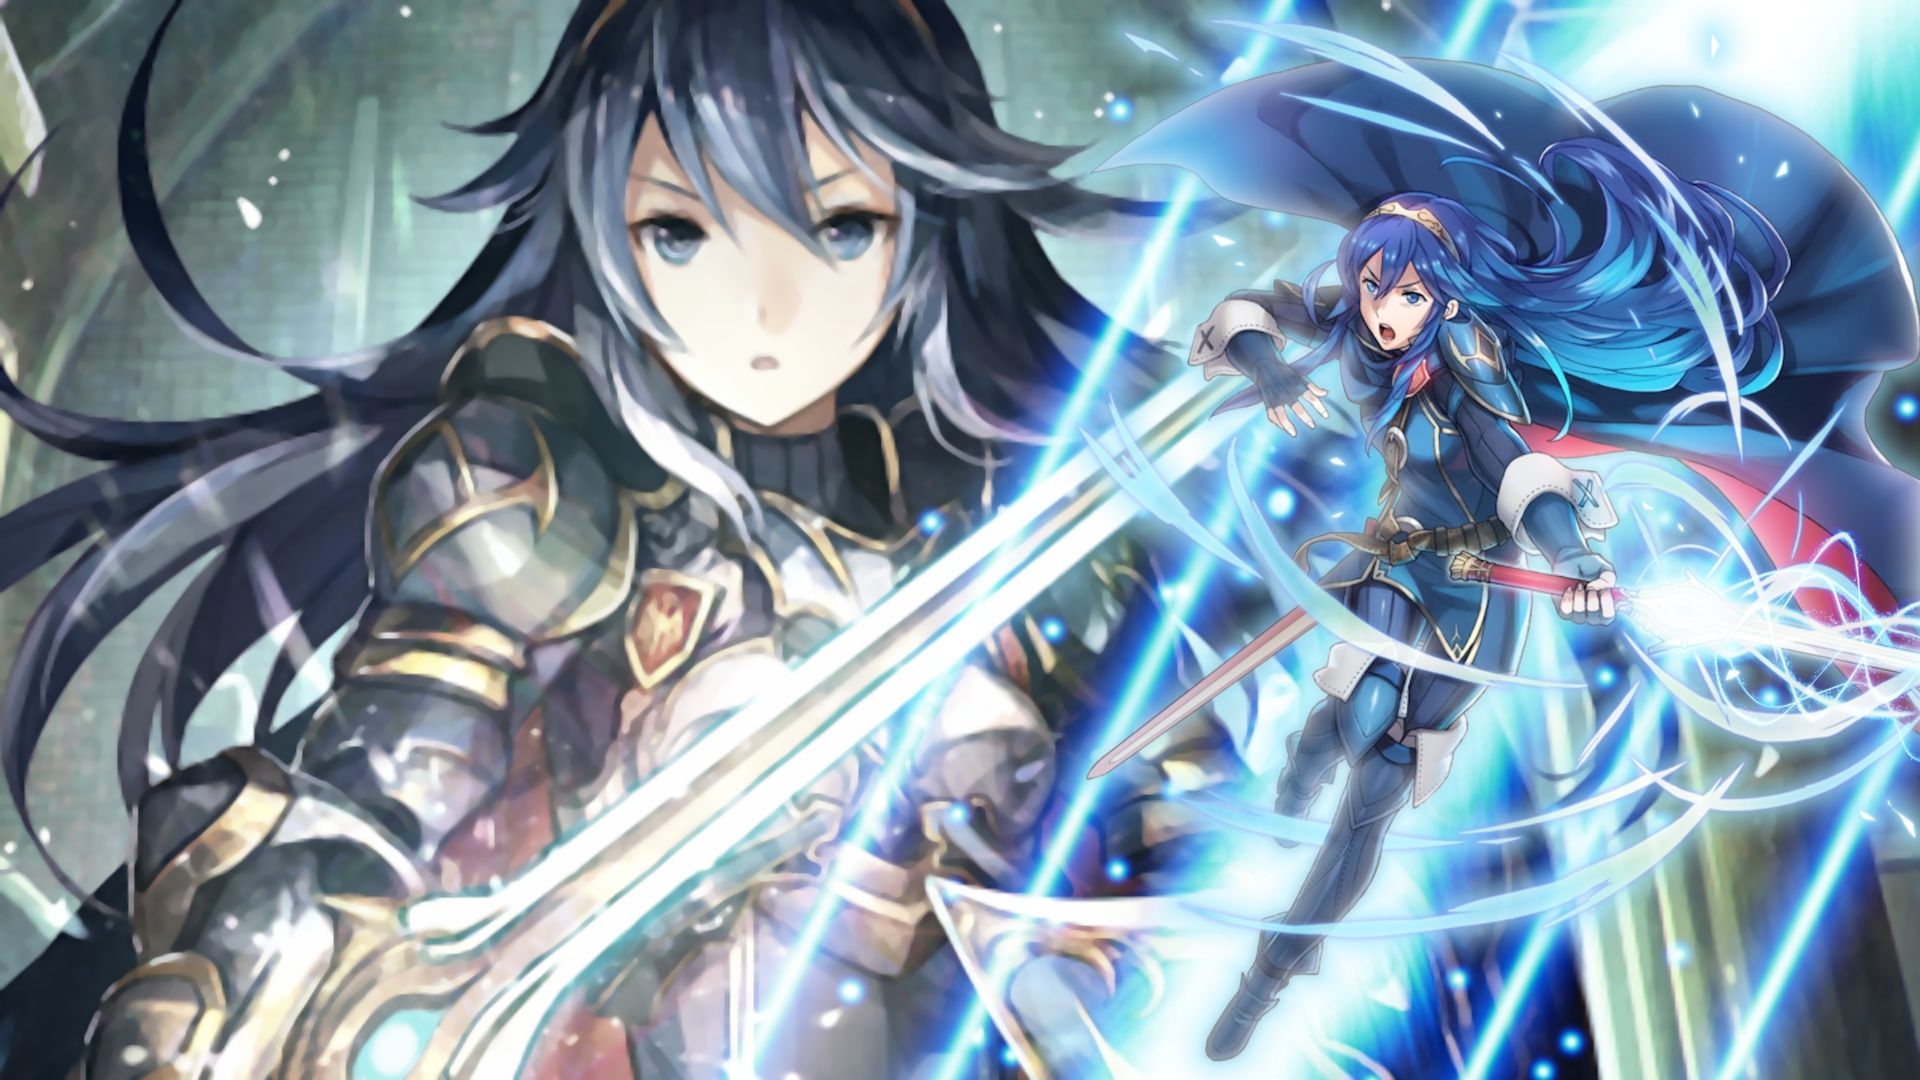 Fire Emblem Heroes Wallpaper Lucina By Incognitoza On Deviantart